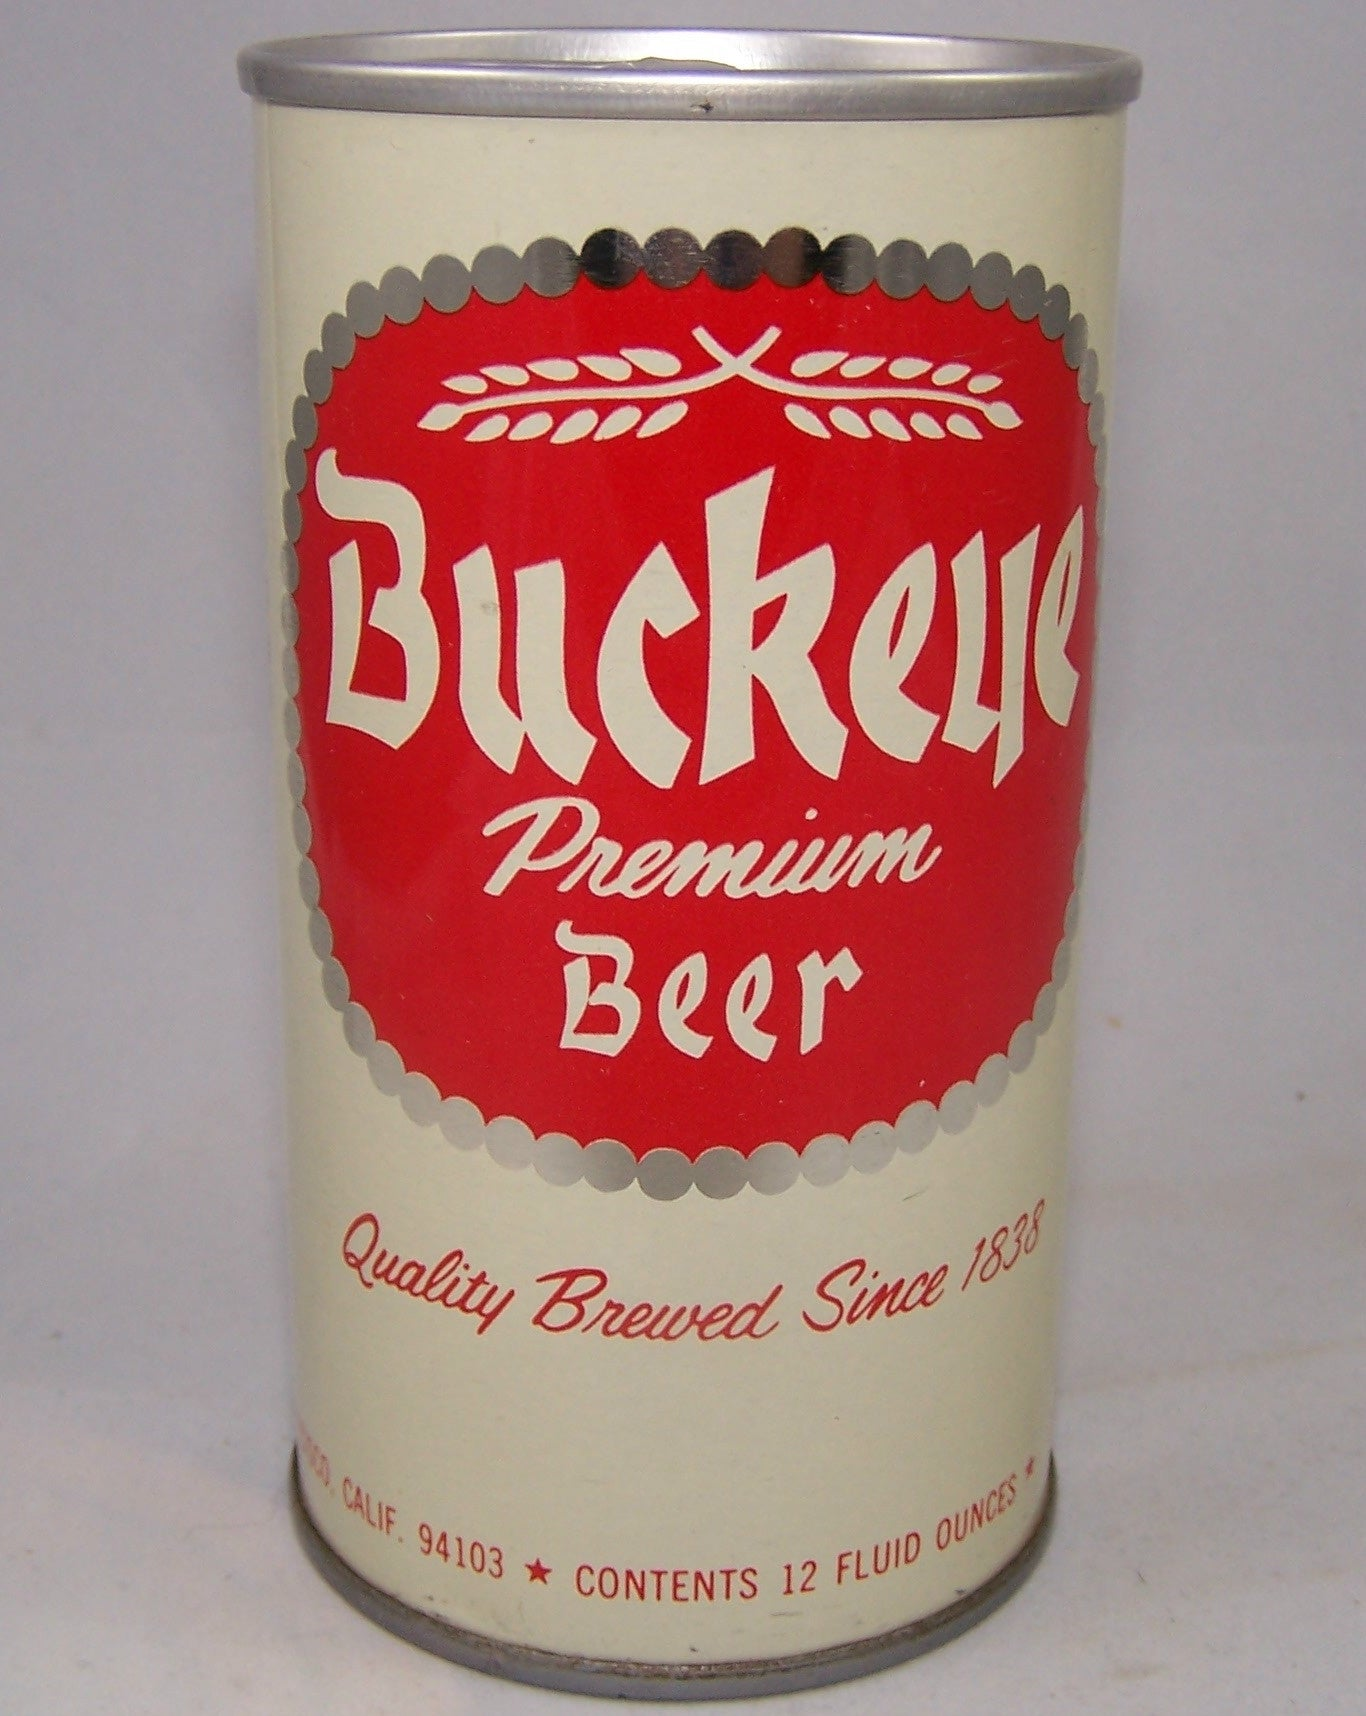 Buckeye Premium Beer, USBC II,  47-11 Grade 1/1+ Sold on 10/11/15